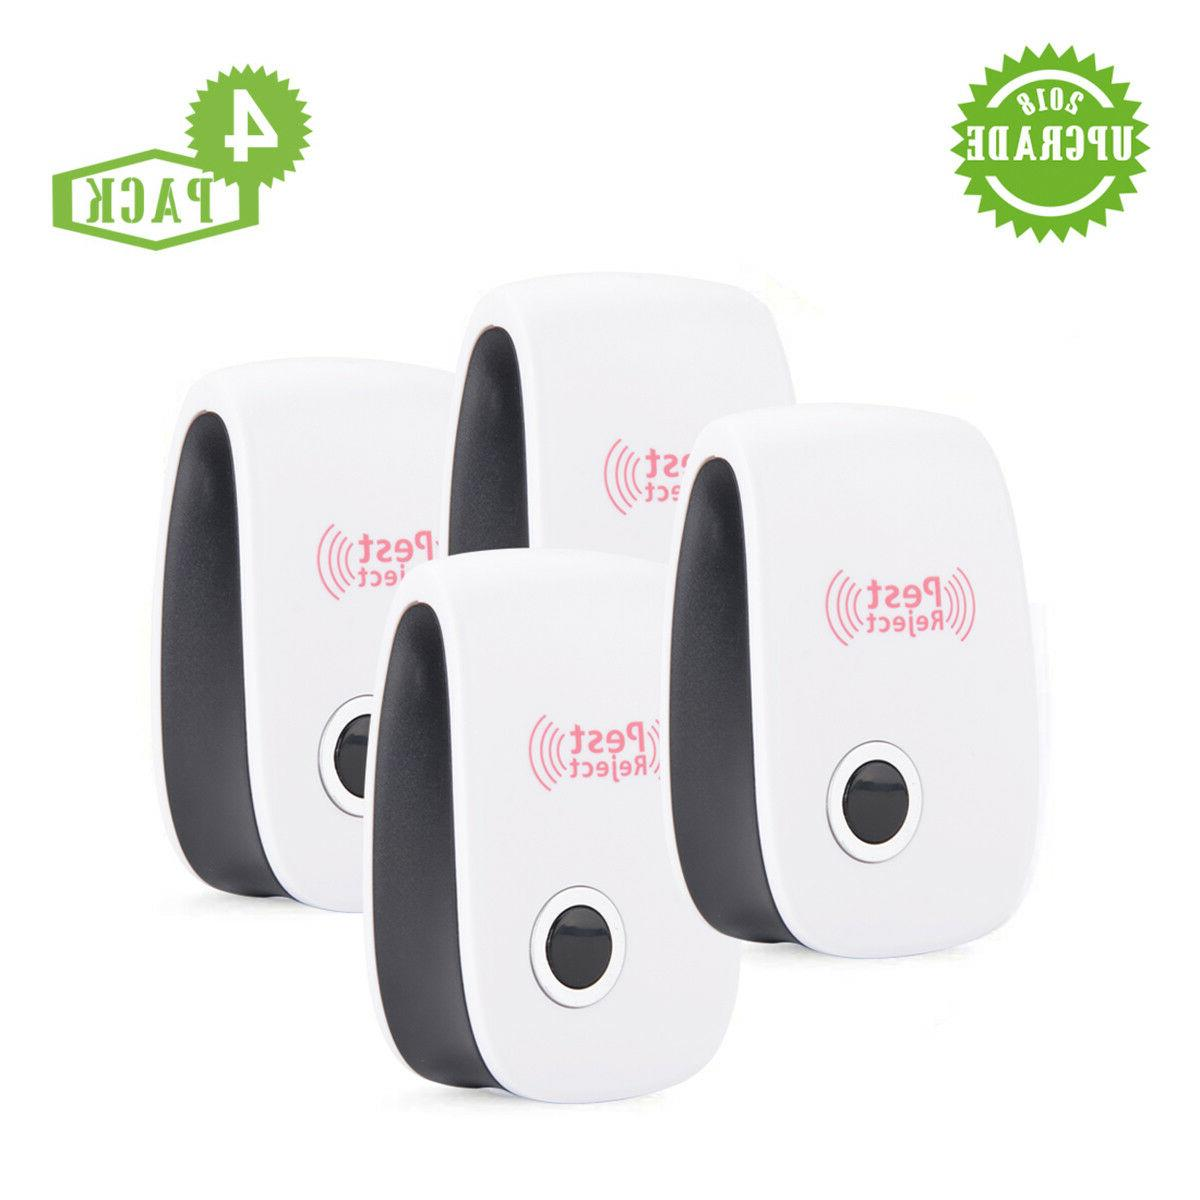 Ultrasonic Pest Electronic Plug In Control Reject Bug